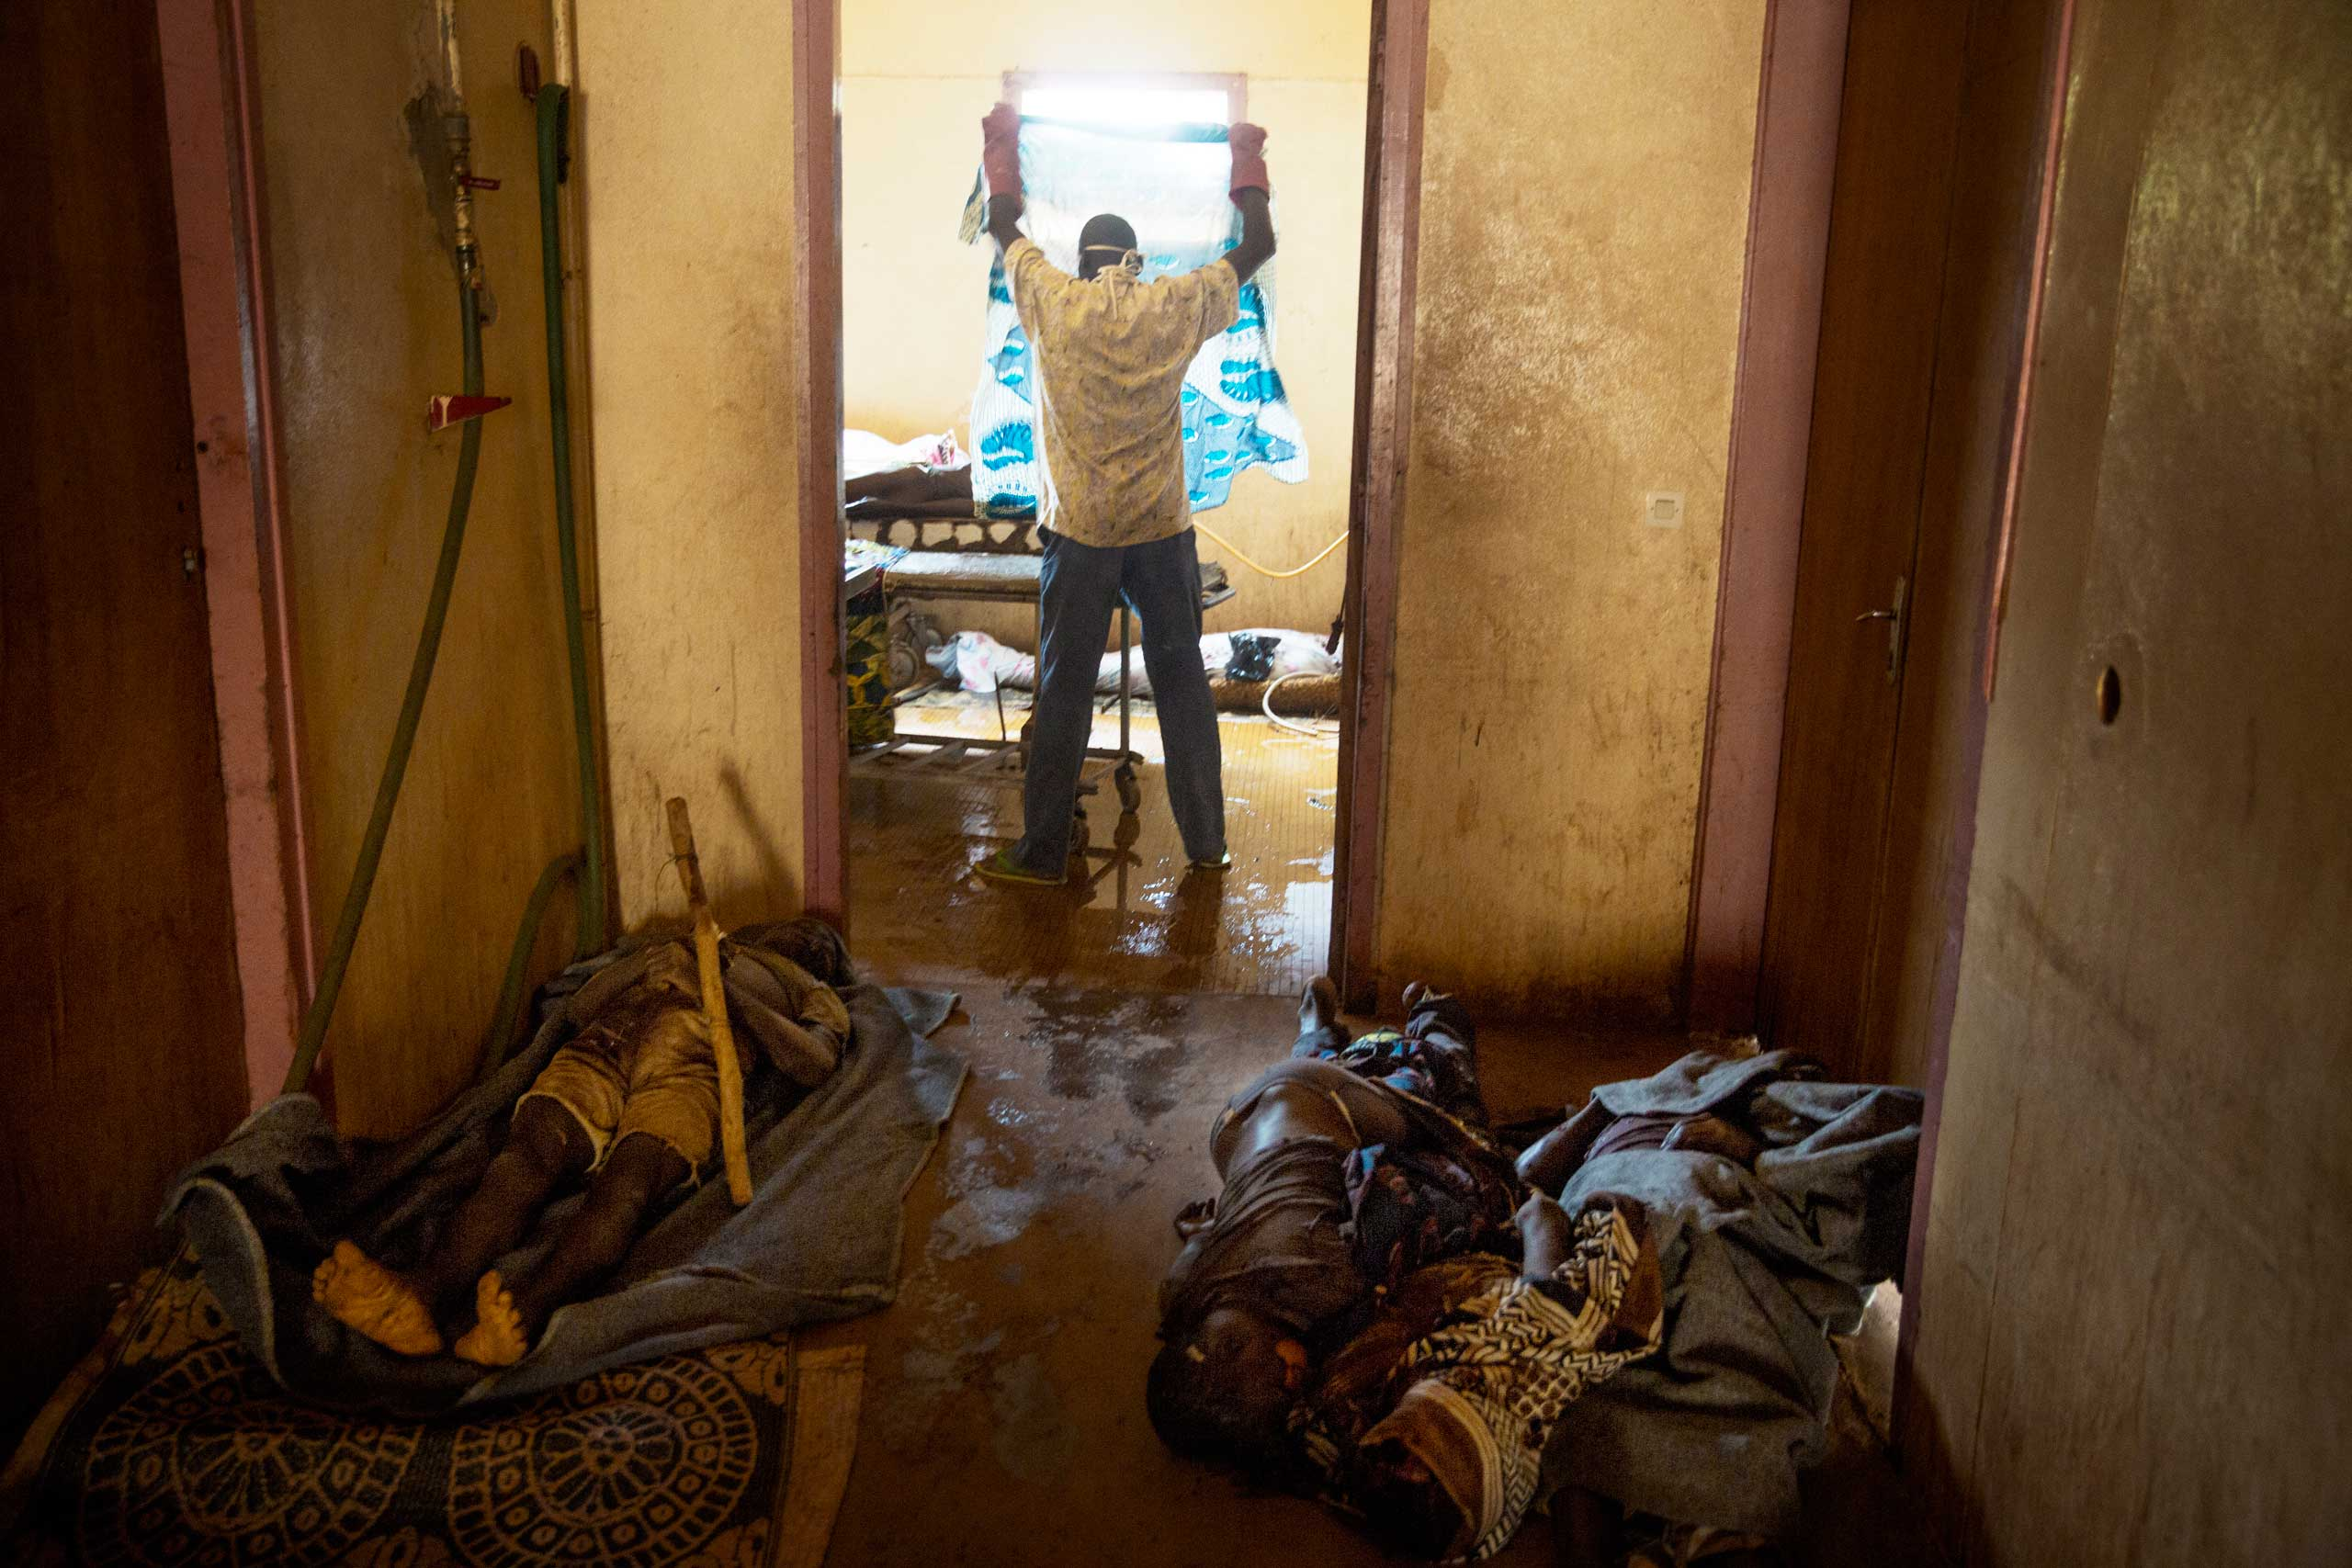 A morgue workers prepares a body for funeral after a deadly bout of street violence between Séléka and anti-balaka. Bangui, Central African Republic. Dec. 16, 2013.